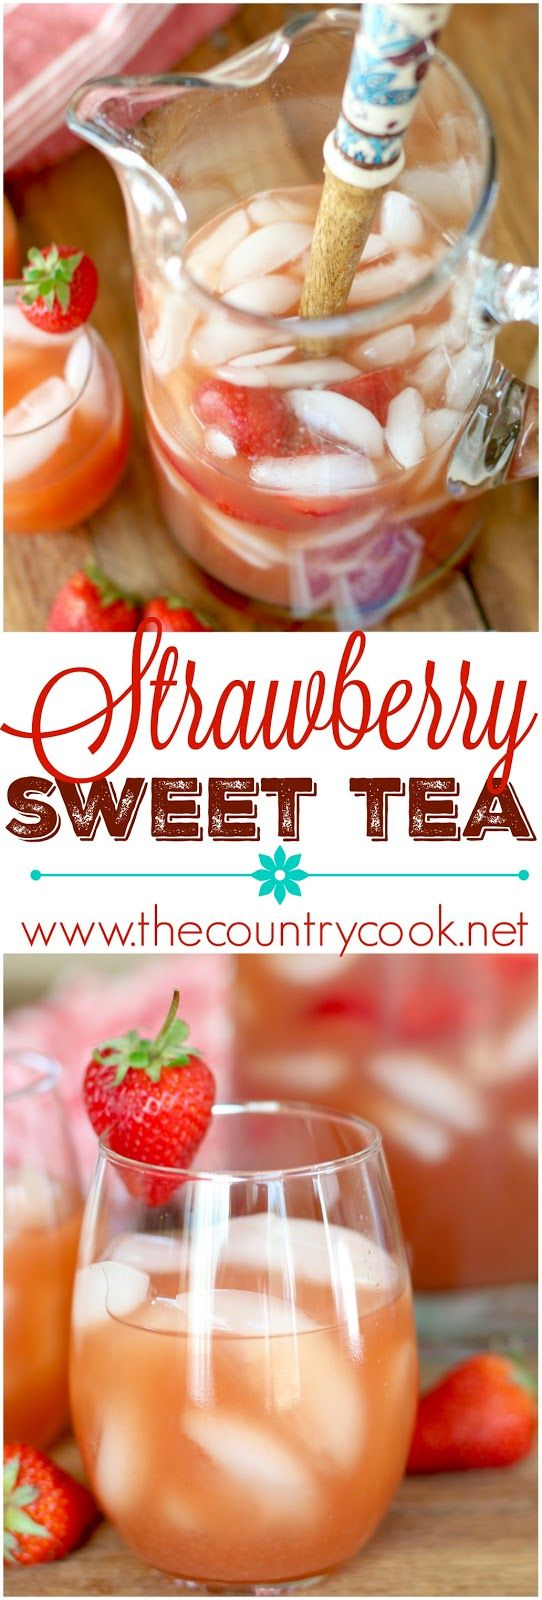 Strawberry Sweet Tea (Sugar Free) recipe (thanks to Equal®!) from The Country Cook. Summer in a glass. Perfect for parties or perfect for sitting on the porch on a hot day. Everyone fell in love with this drink when I made it! #EmbraceYourTaste #yummy #ad